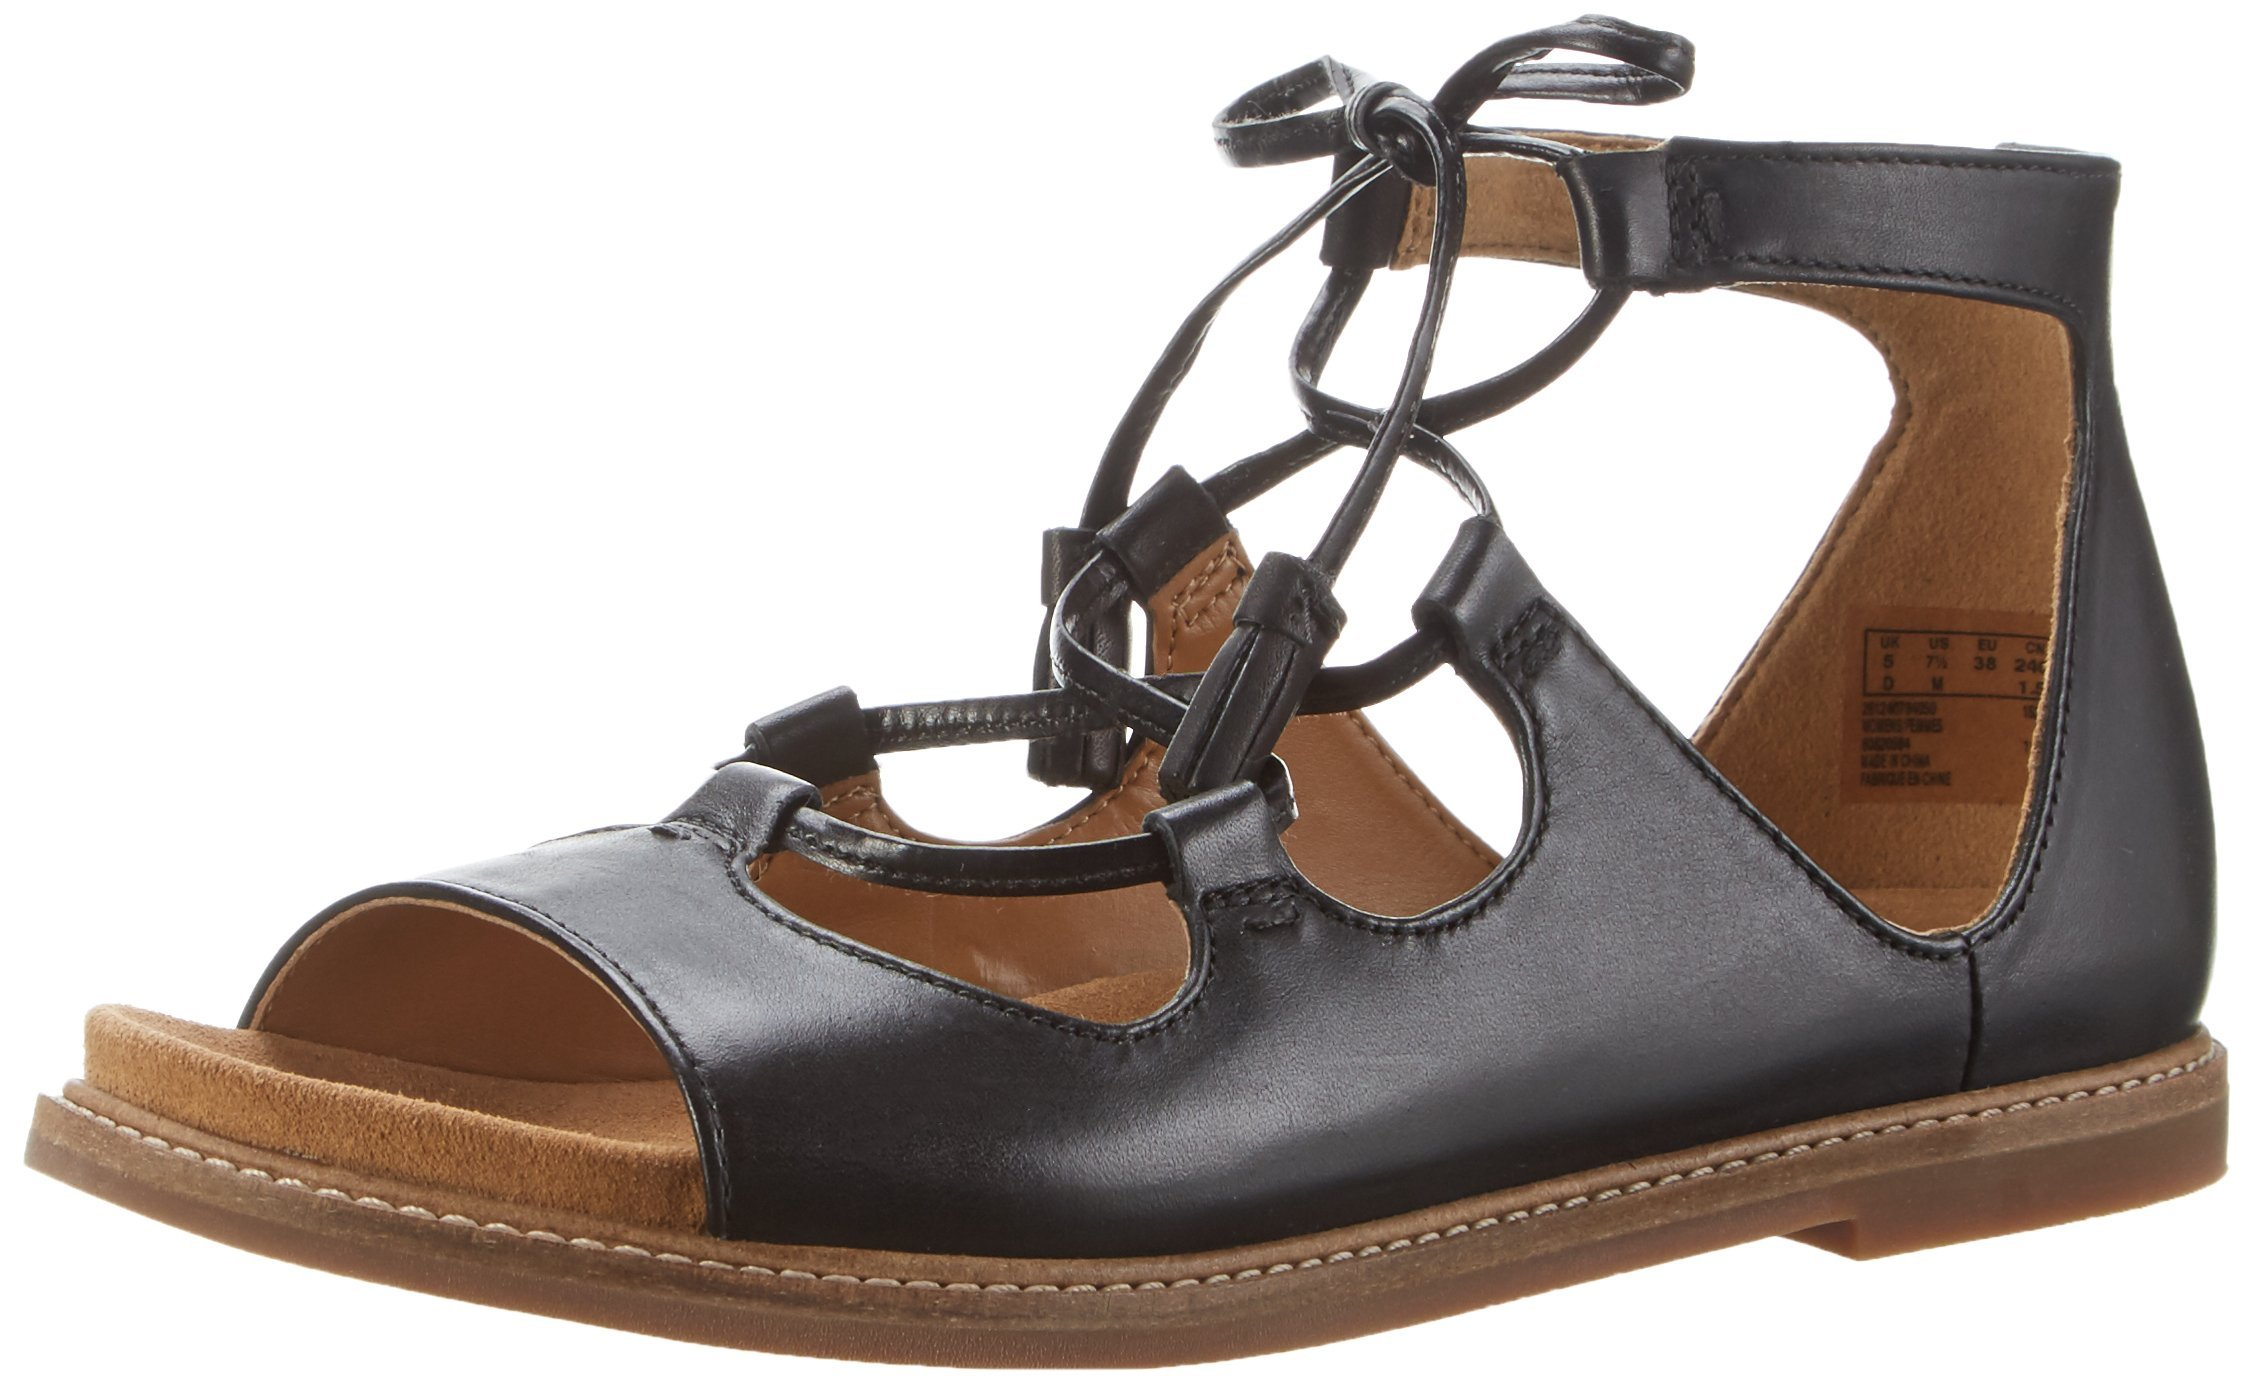 Borde Menstruación Secretar  Clarks Women's Corsio Dallas Leather Fashion Sandals - Gia Designer